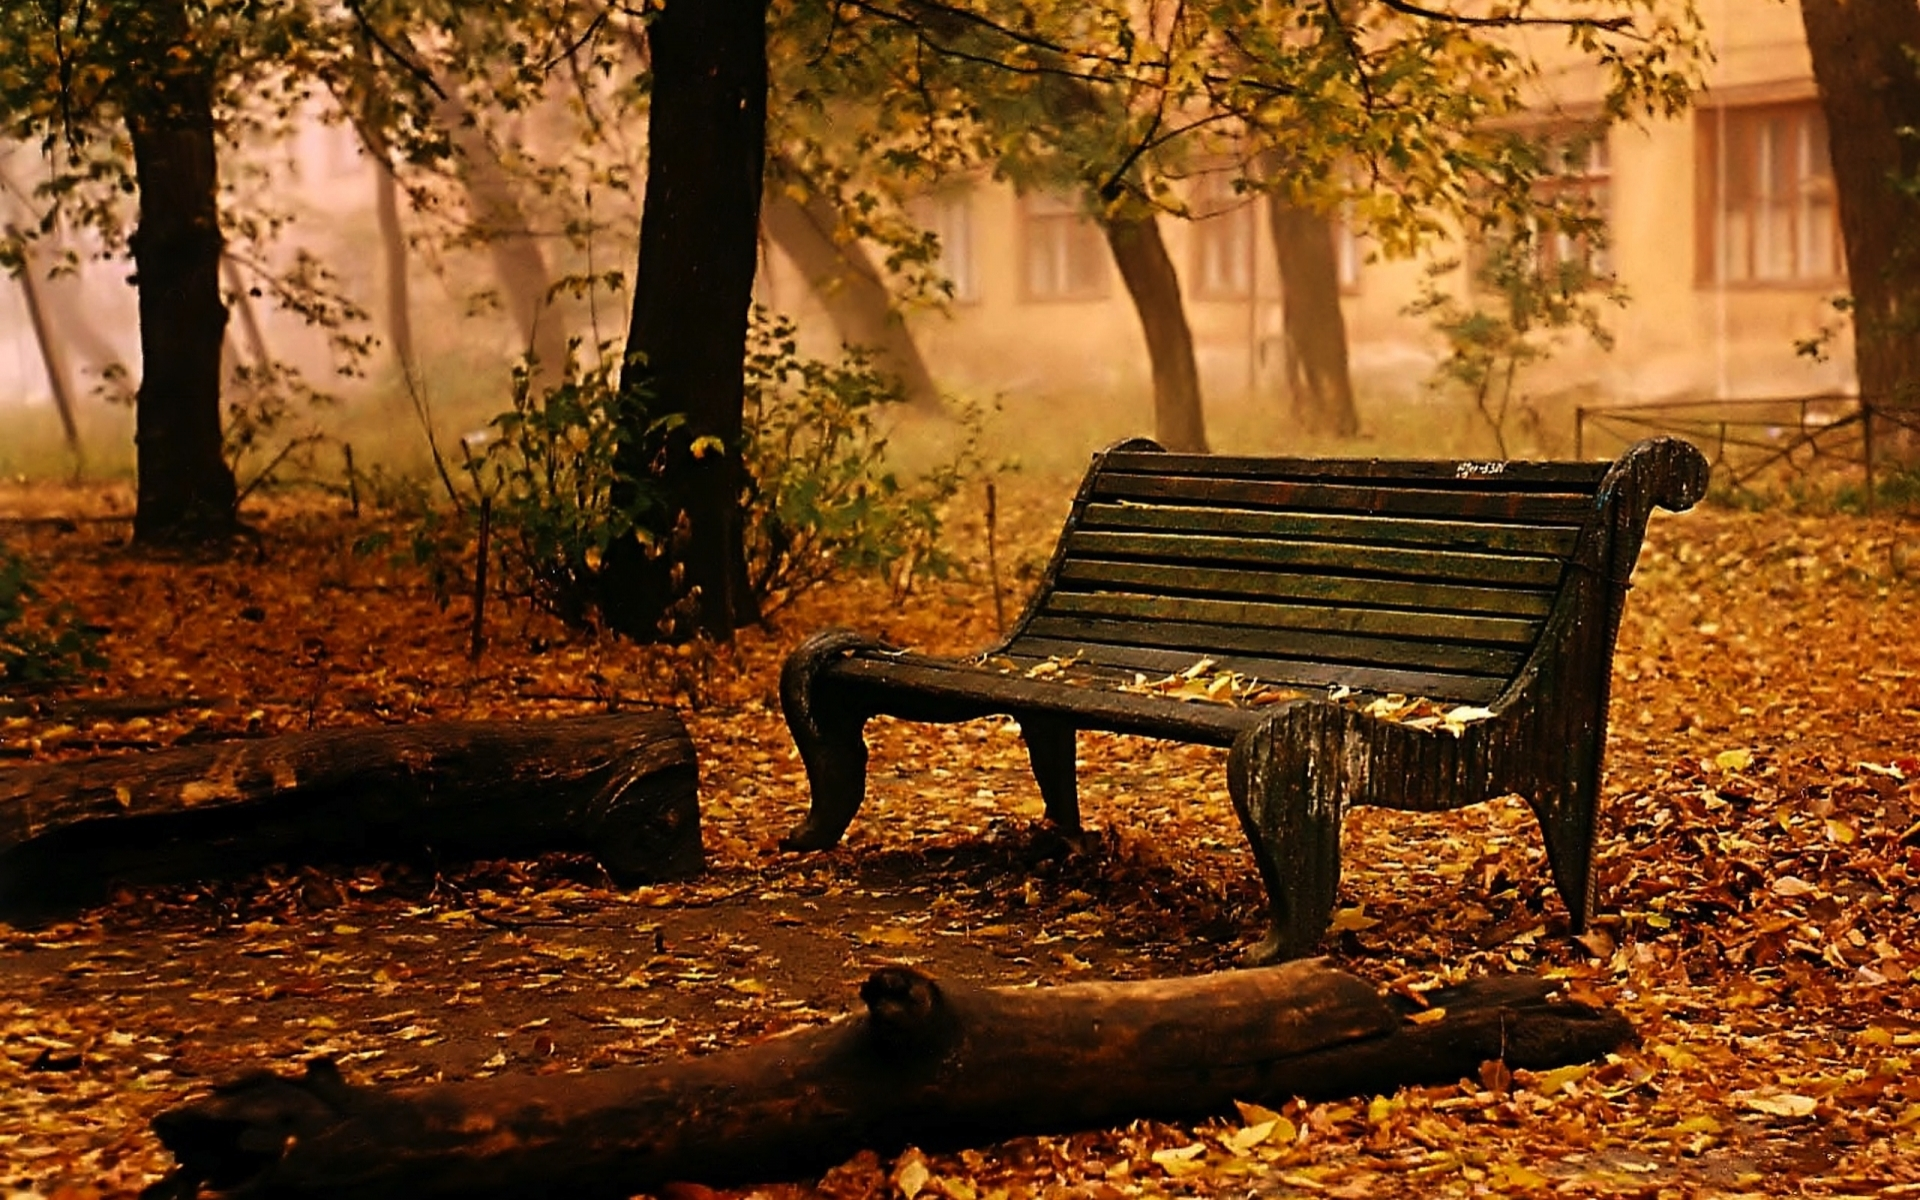 Garden Design With Landscapes Bench Chair Seat Autumn Fall Leaves Trees Mood Large Backyard